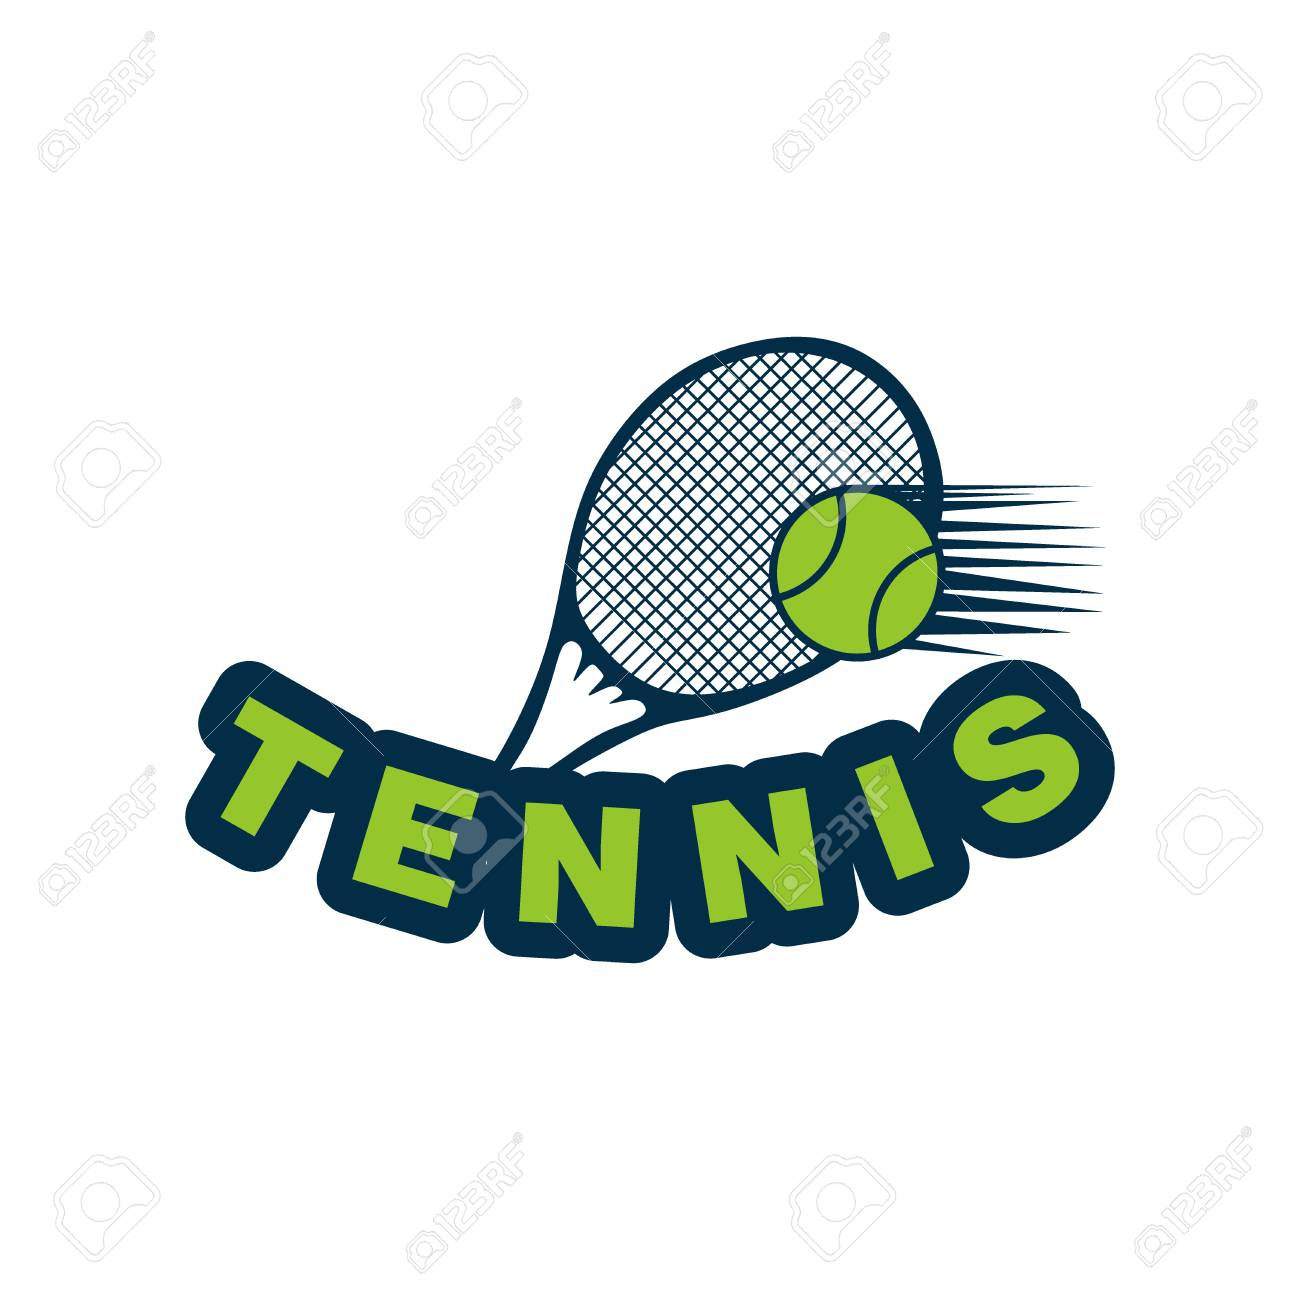 Tennis Logo Designs Royalty Free Cliparts Vectors And Stock Illustration Image 107645697